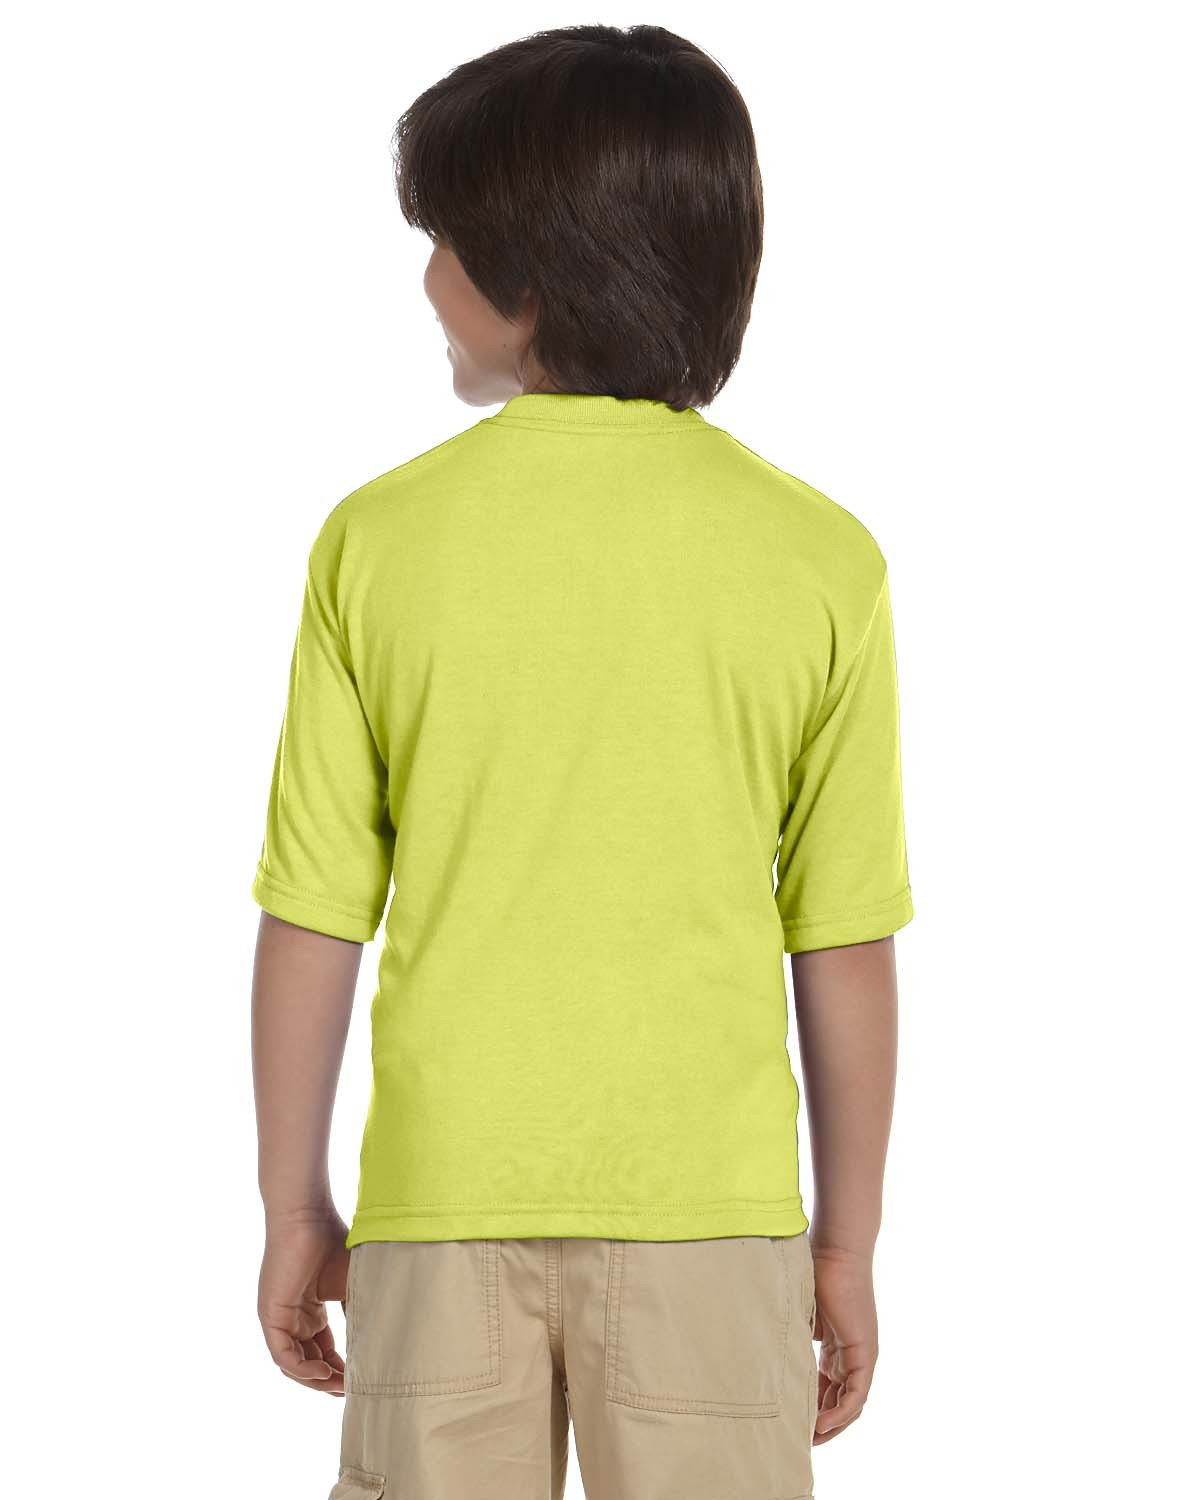 21B Jerzees SAFETY GREEN